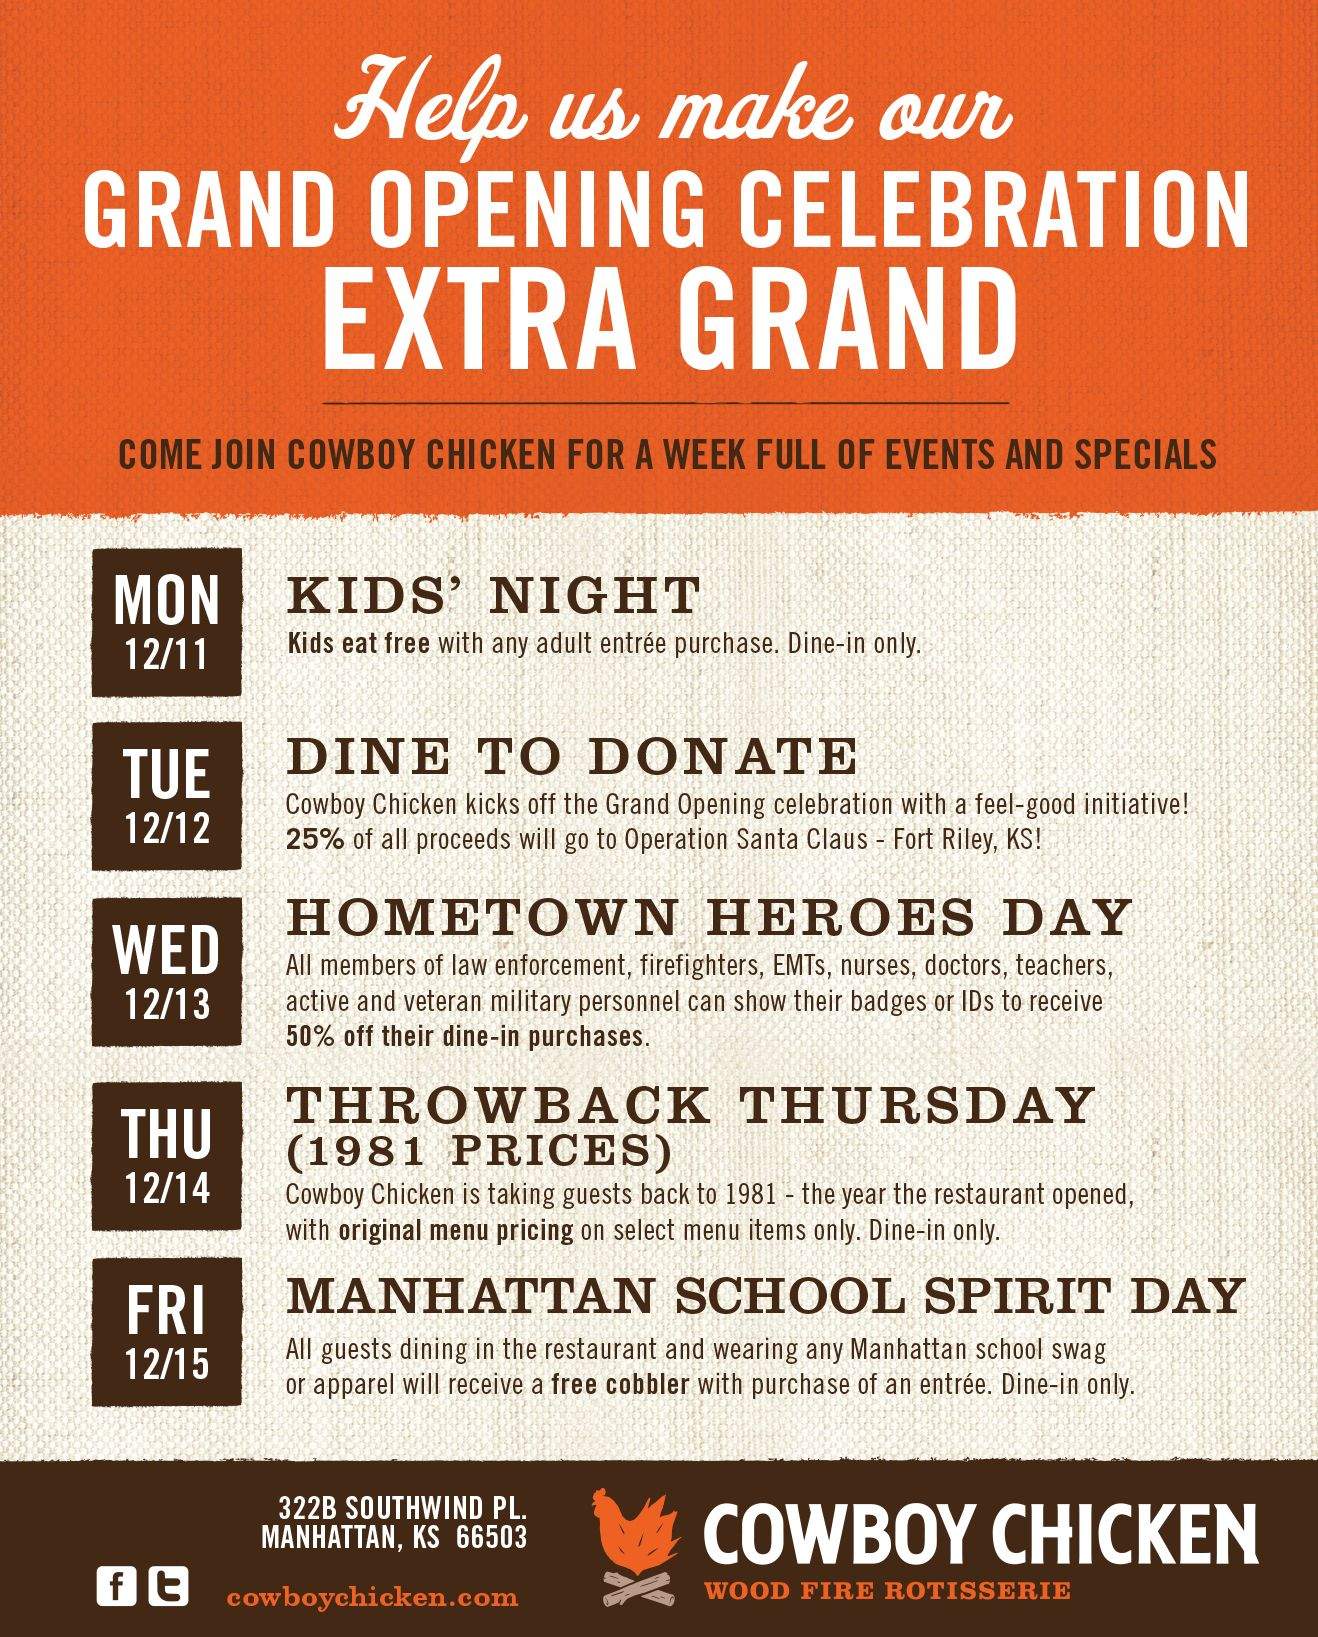 Cowboy Chicken in Manhattan Hosts Weeklong Grand Opening Celebration Dec. 11-15